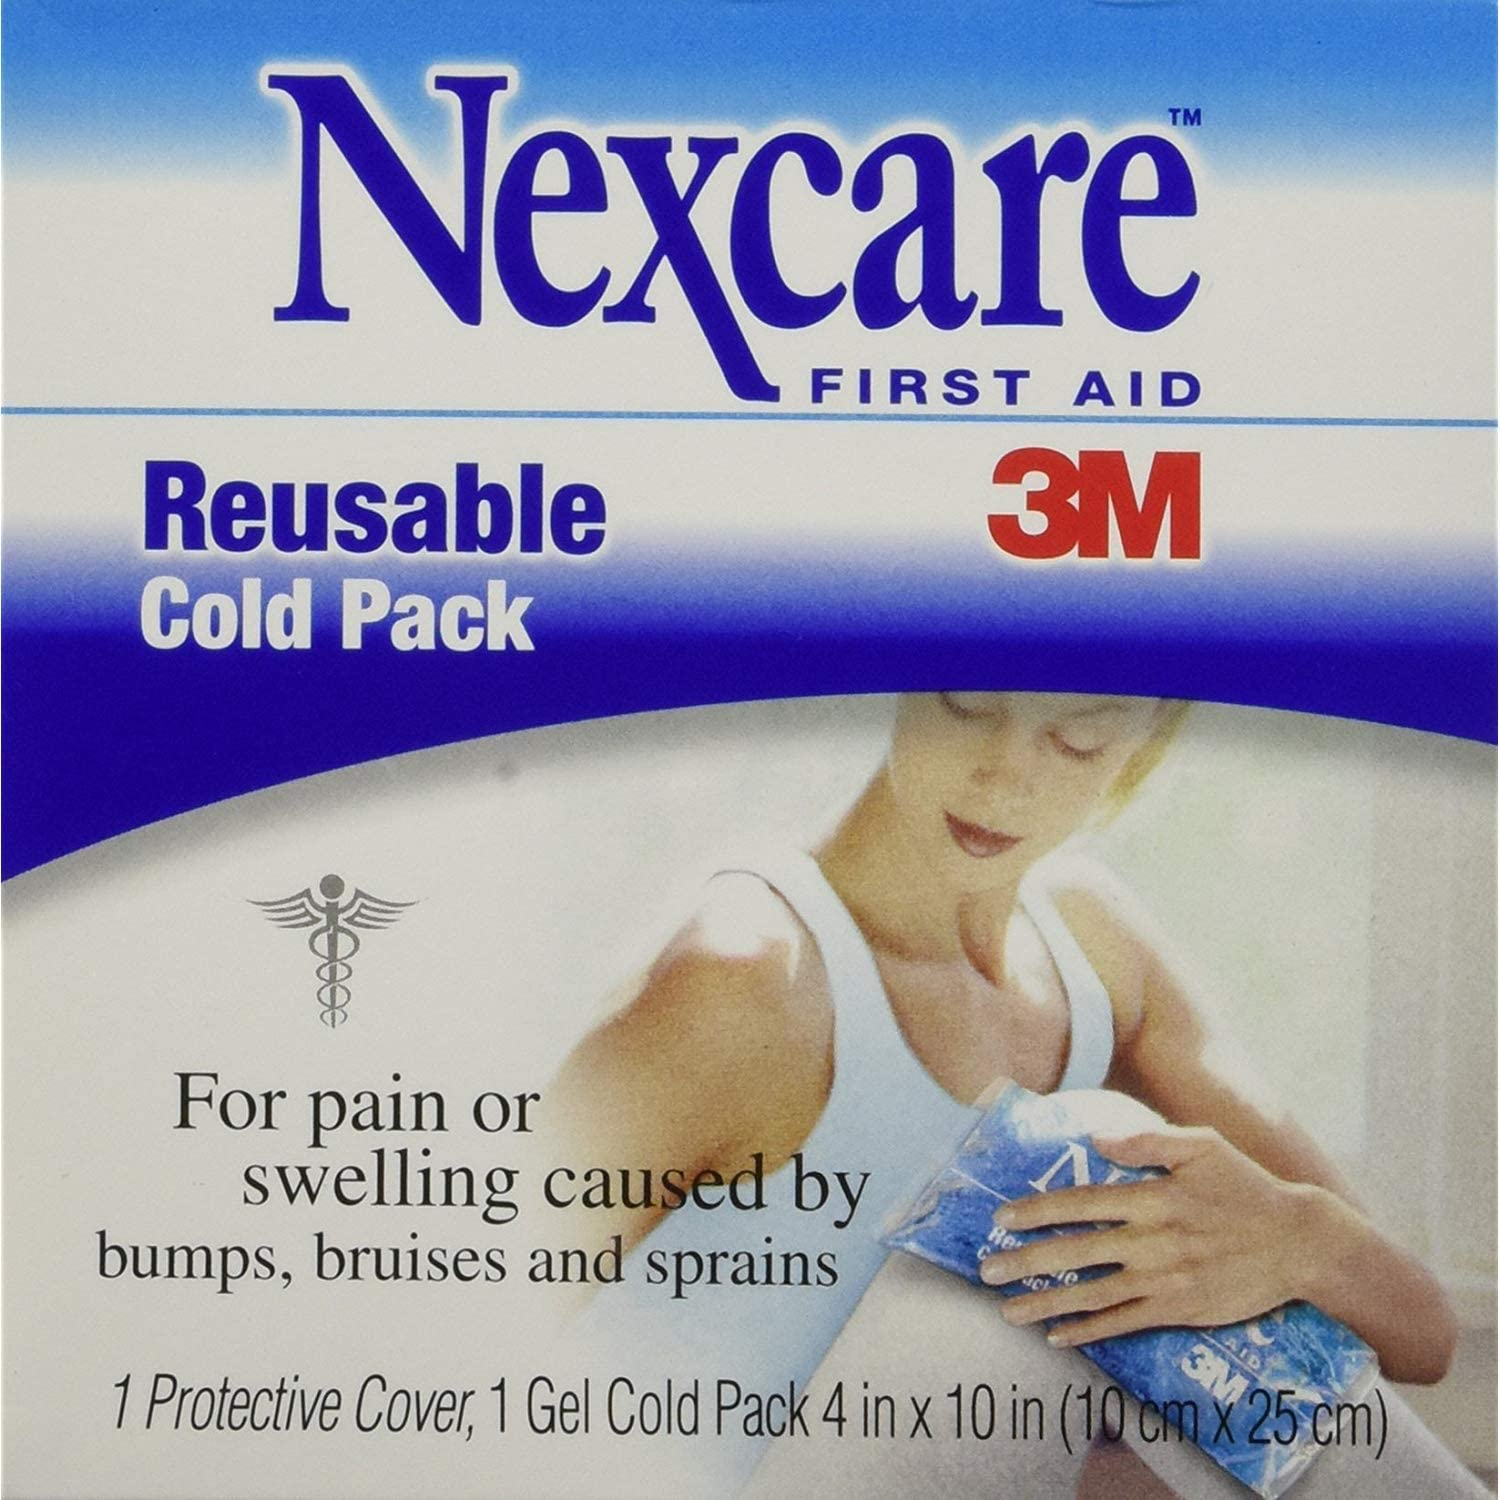 MMM2646 - 3m Nexcare Reusable Cold Pack by 3M: Amazon.es: Salud y ...